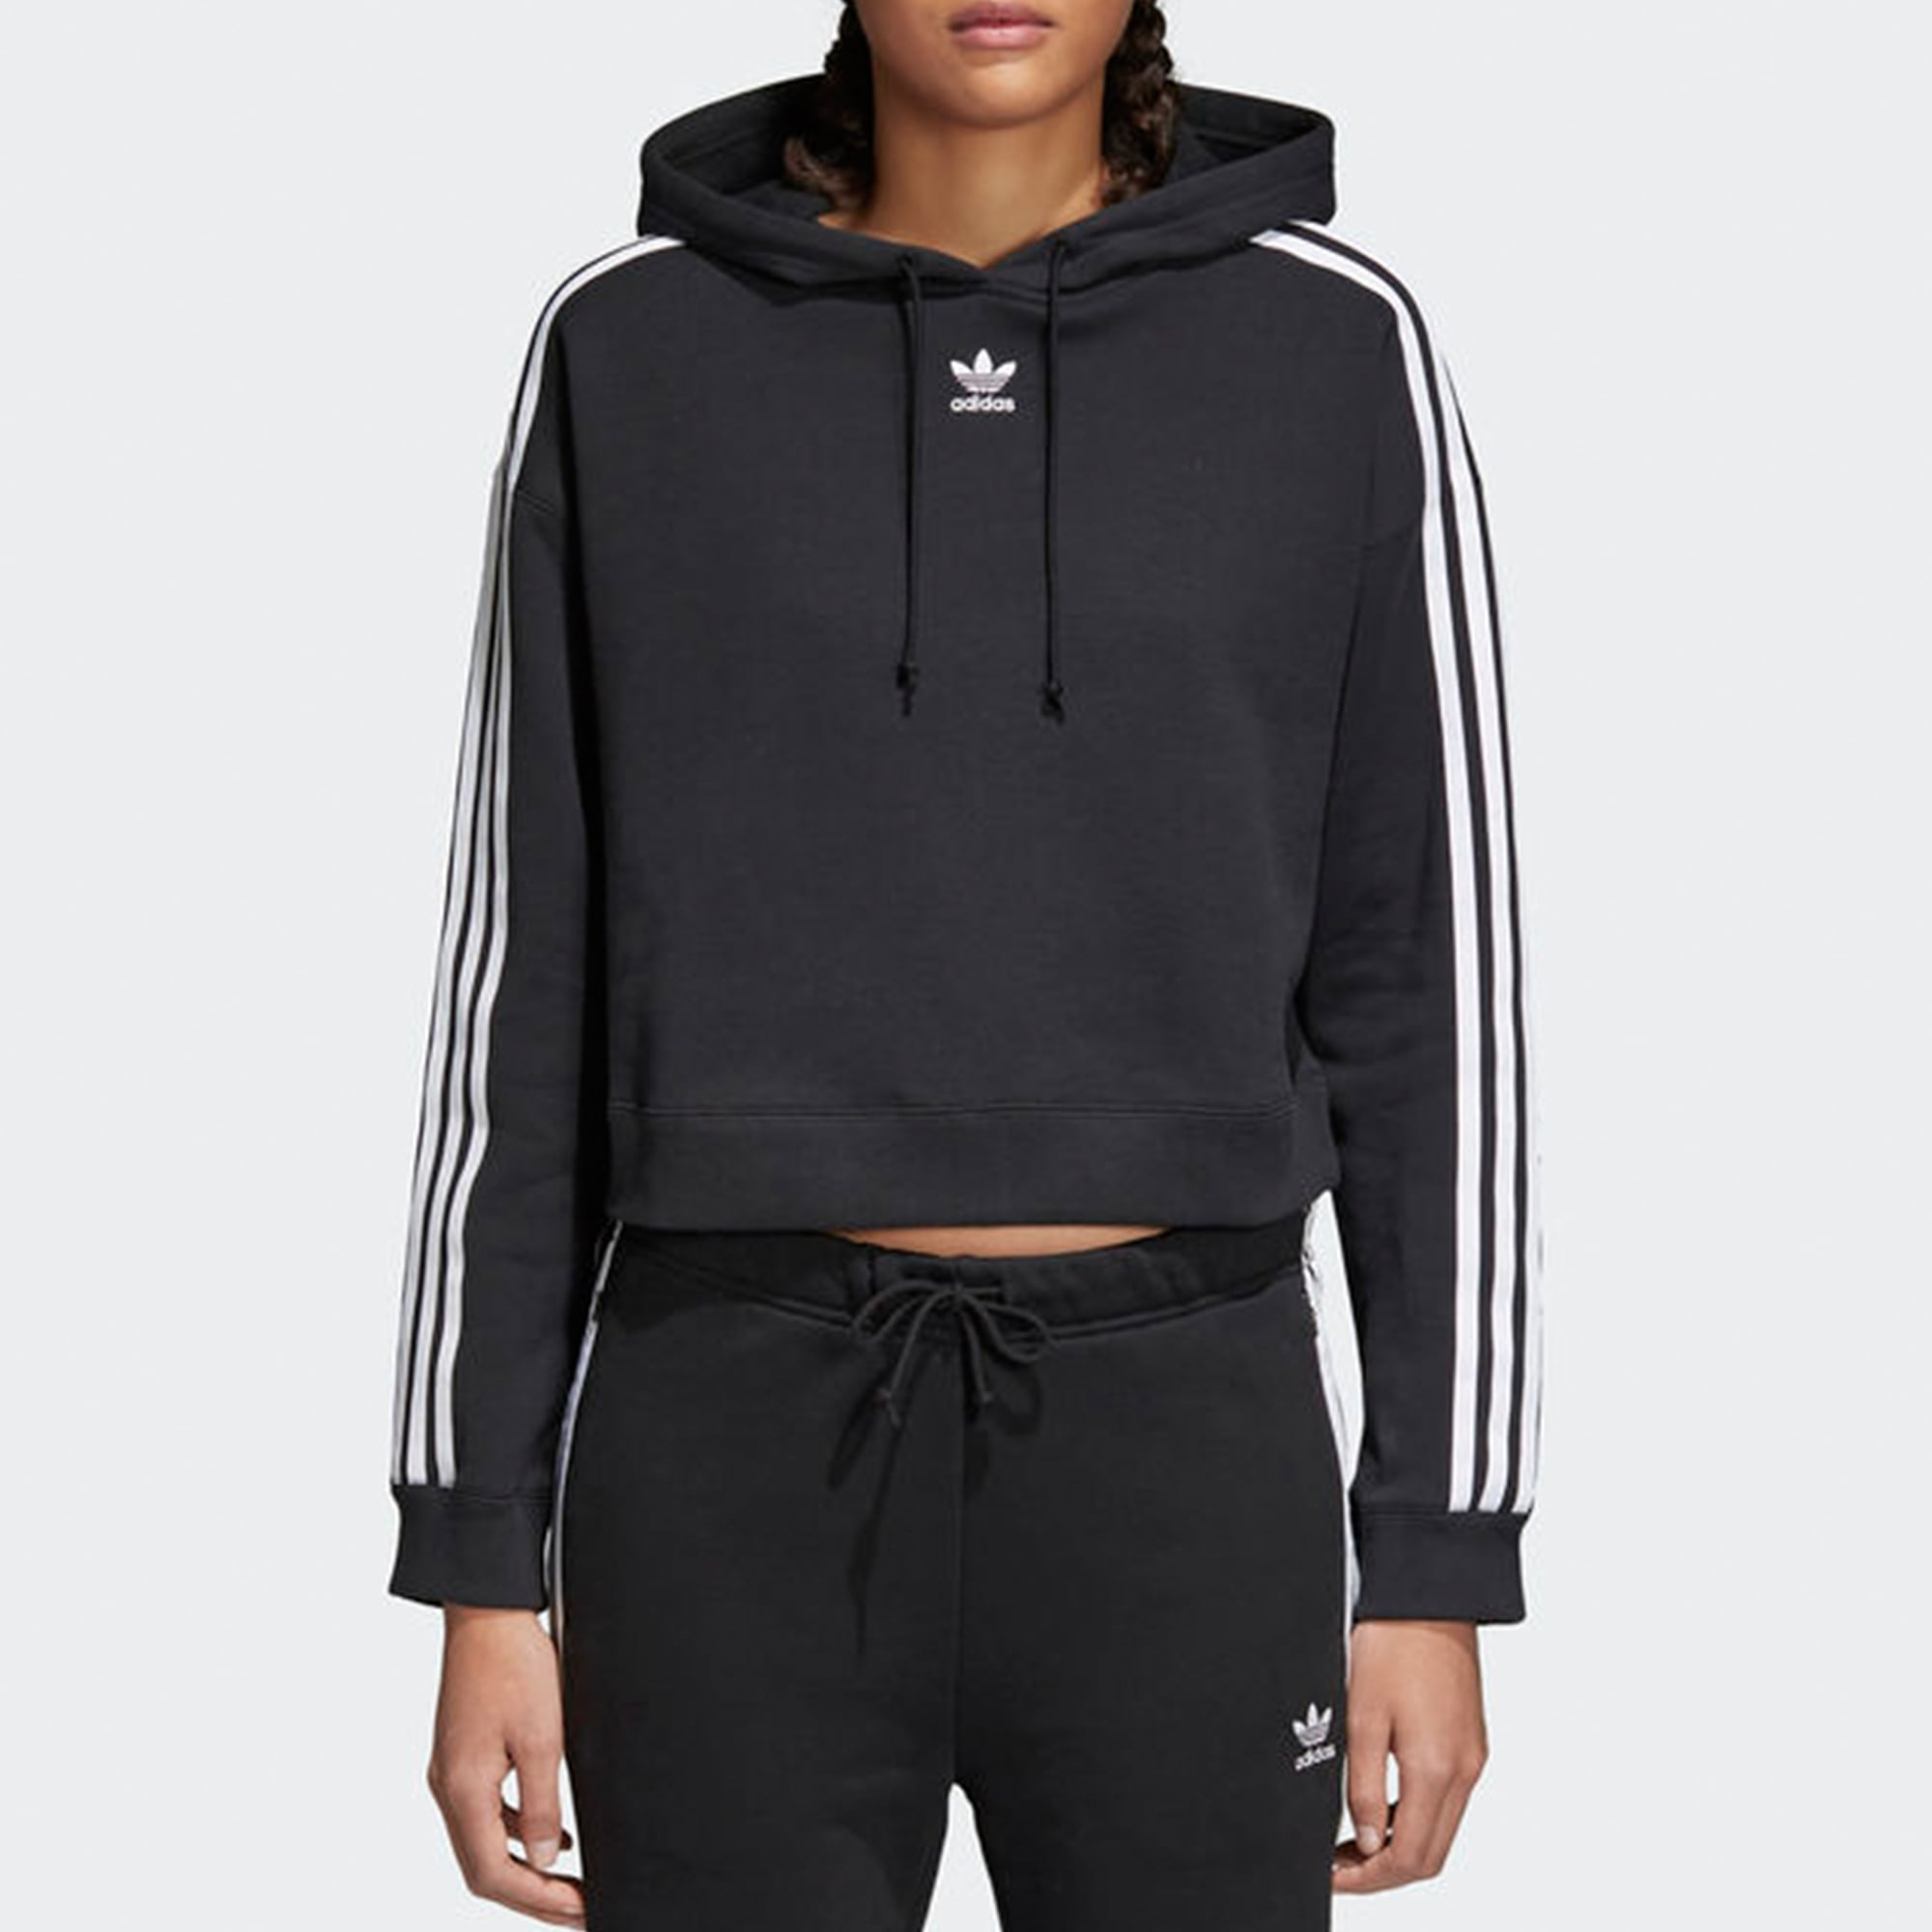 Get 15% Off for a limited time only with our adidas Discount Codes. Discover 8 adidas Voucher Codes tested in December - Live More, Spend Less™.